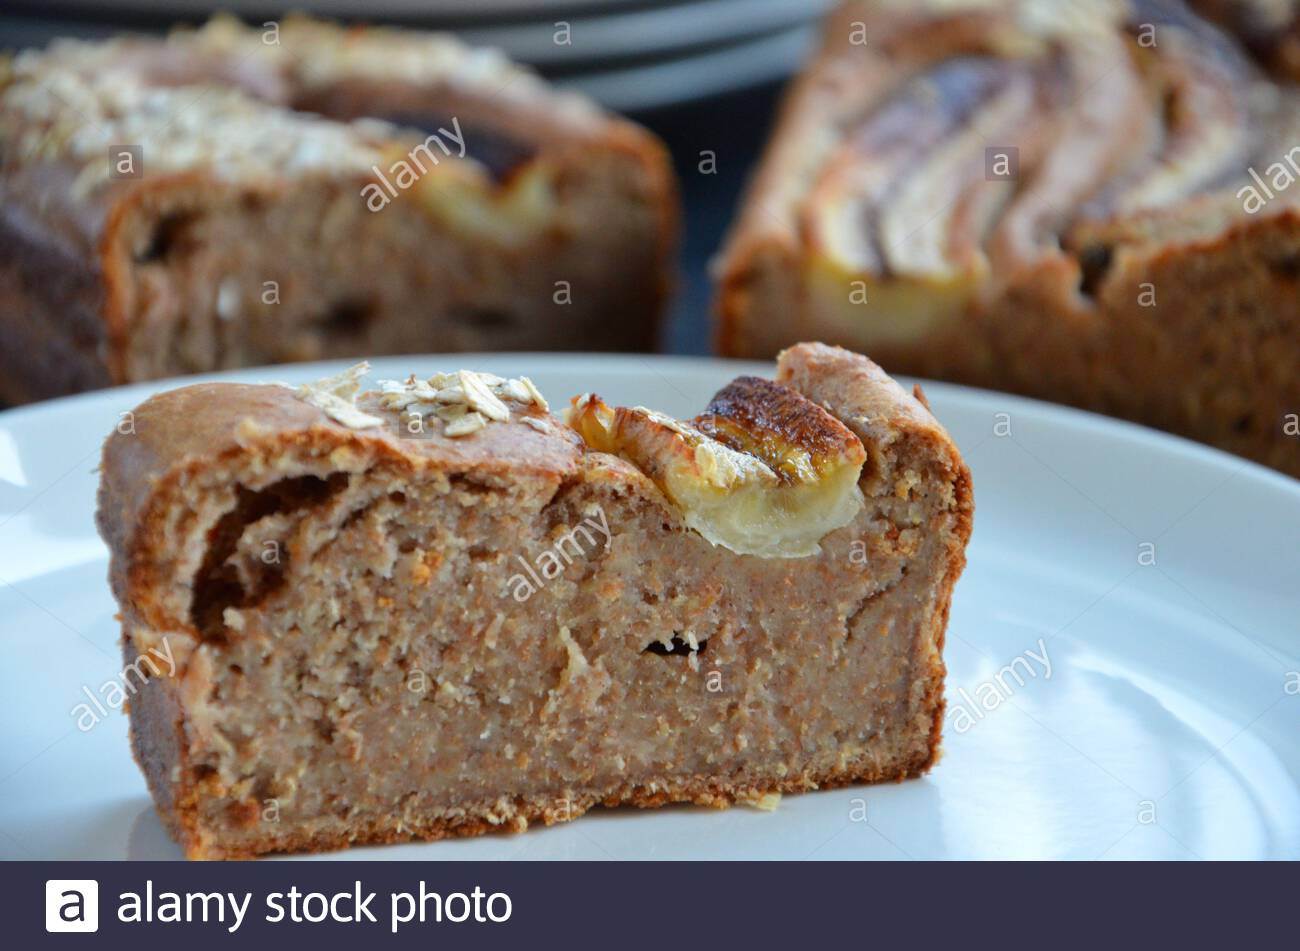 Homemade banana walnut bread made from wholemeal flour, oat flakes on top, one slice on a white porcelain plate, blurred background Stock Photo